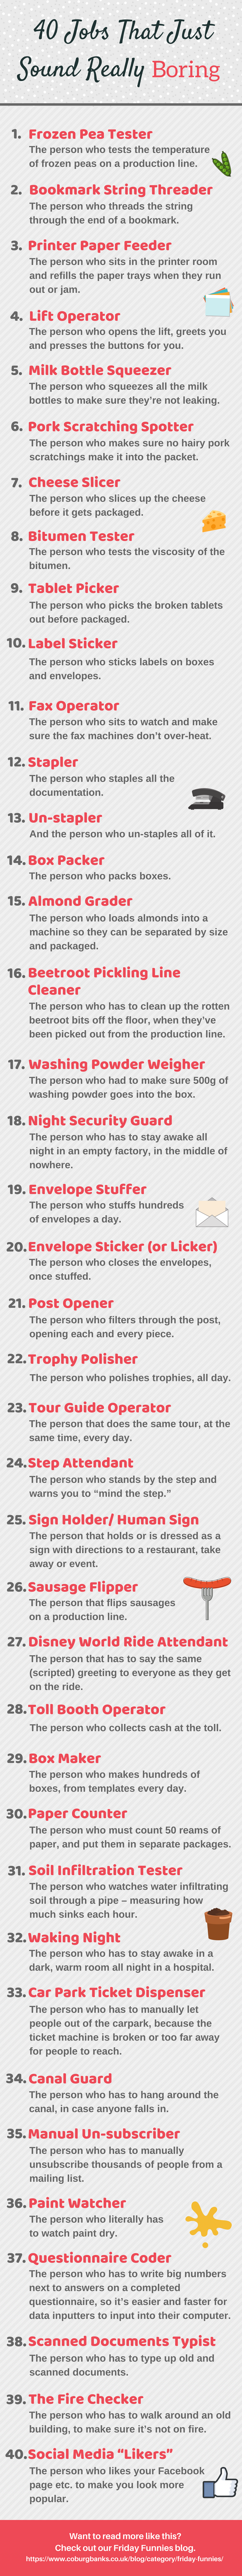 40 Jobs That Just Sound Really Boring